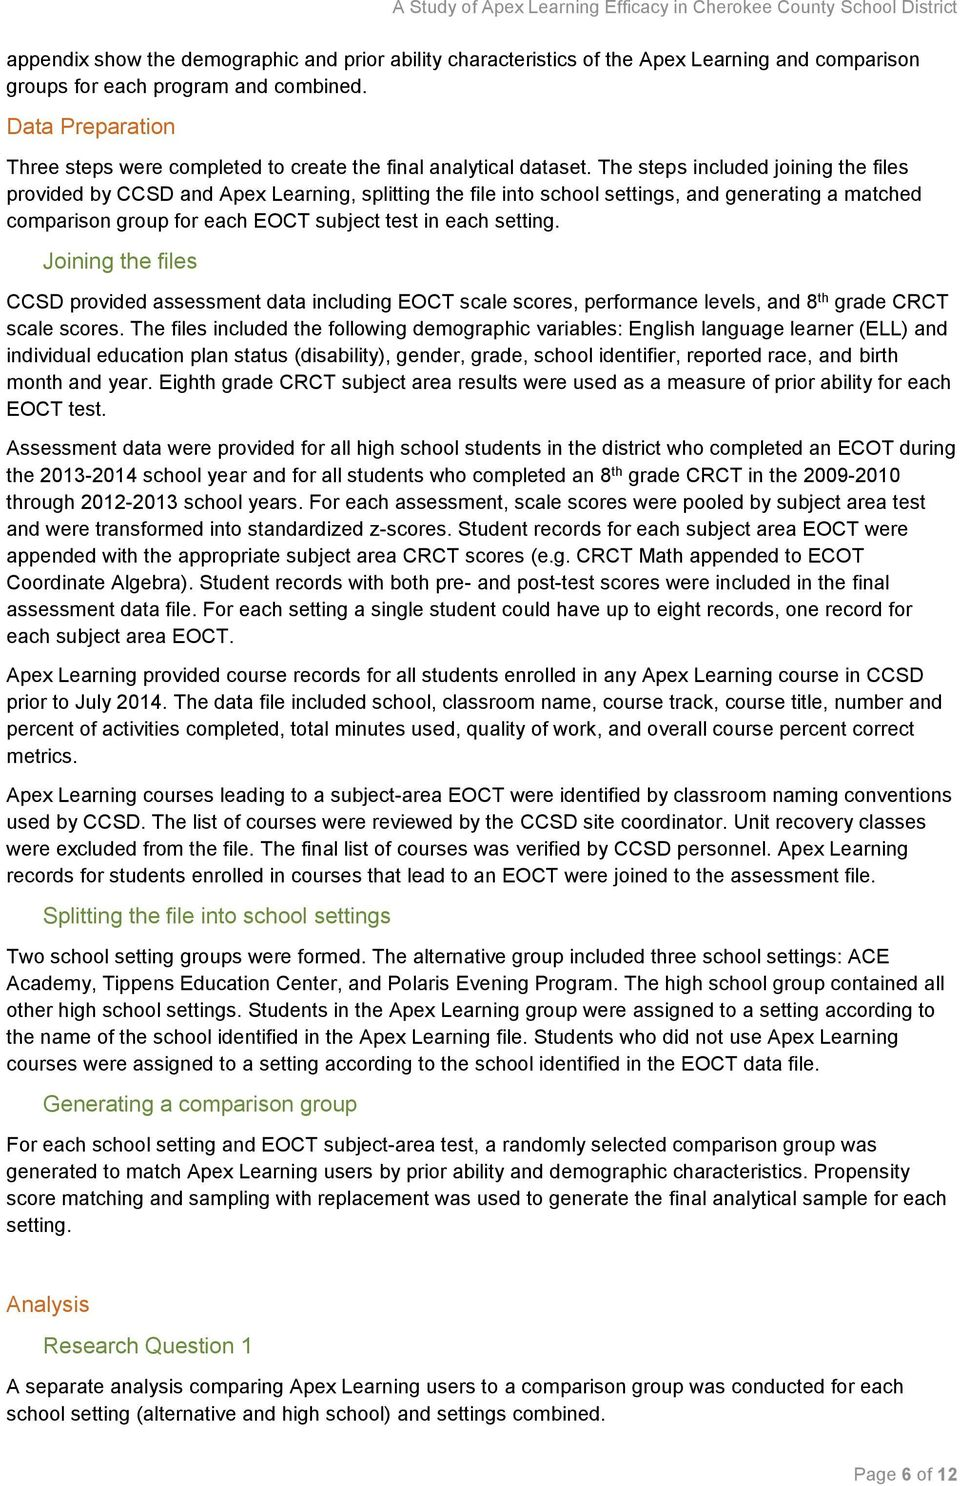 The steps included joining the files provided by CCSD and Apex Learning, splitting the file into school settings, and generating a matched comparison group for each EOCT subject test in each setting.